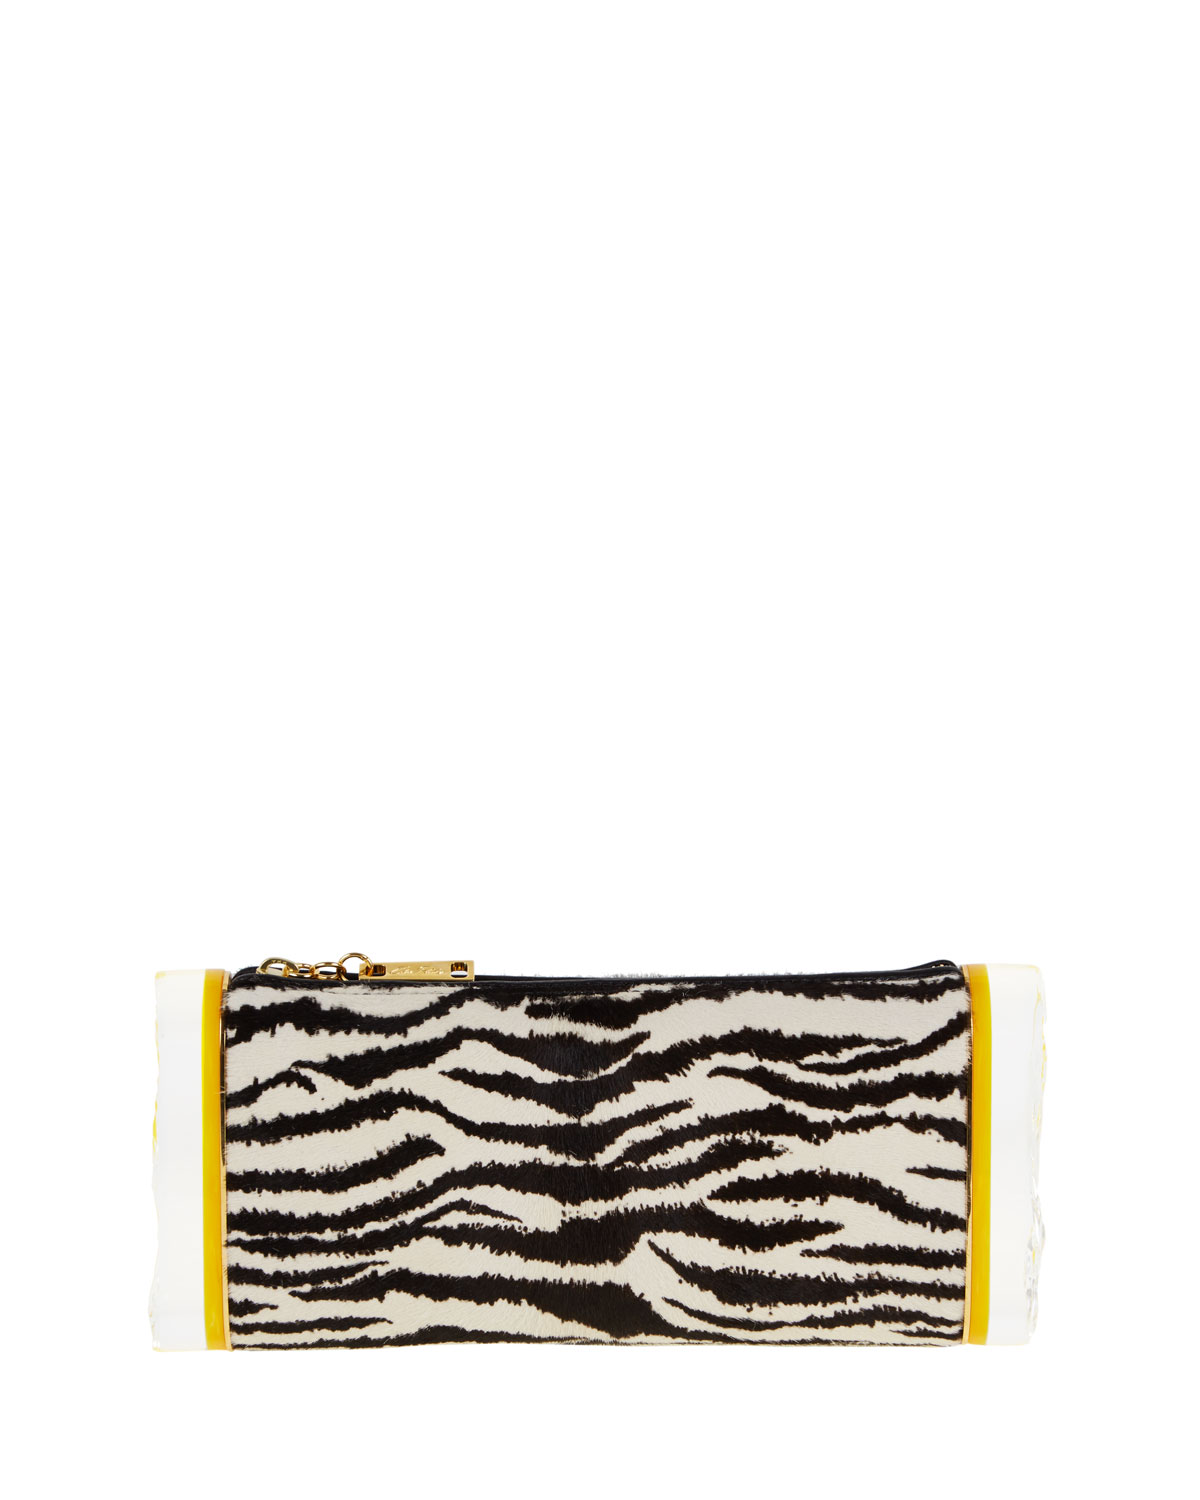 Soft Lara Zebra-Print Calf Hair Clutch Bag, Black/White